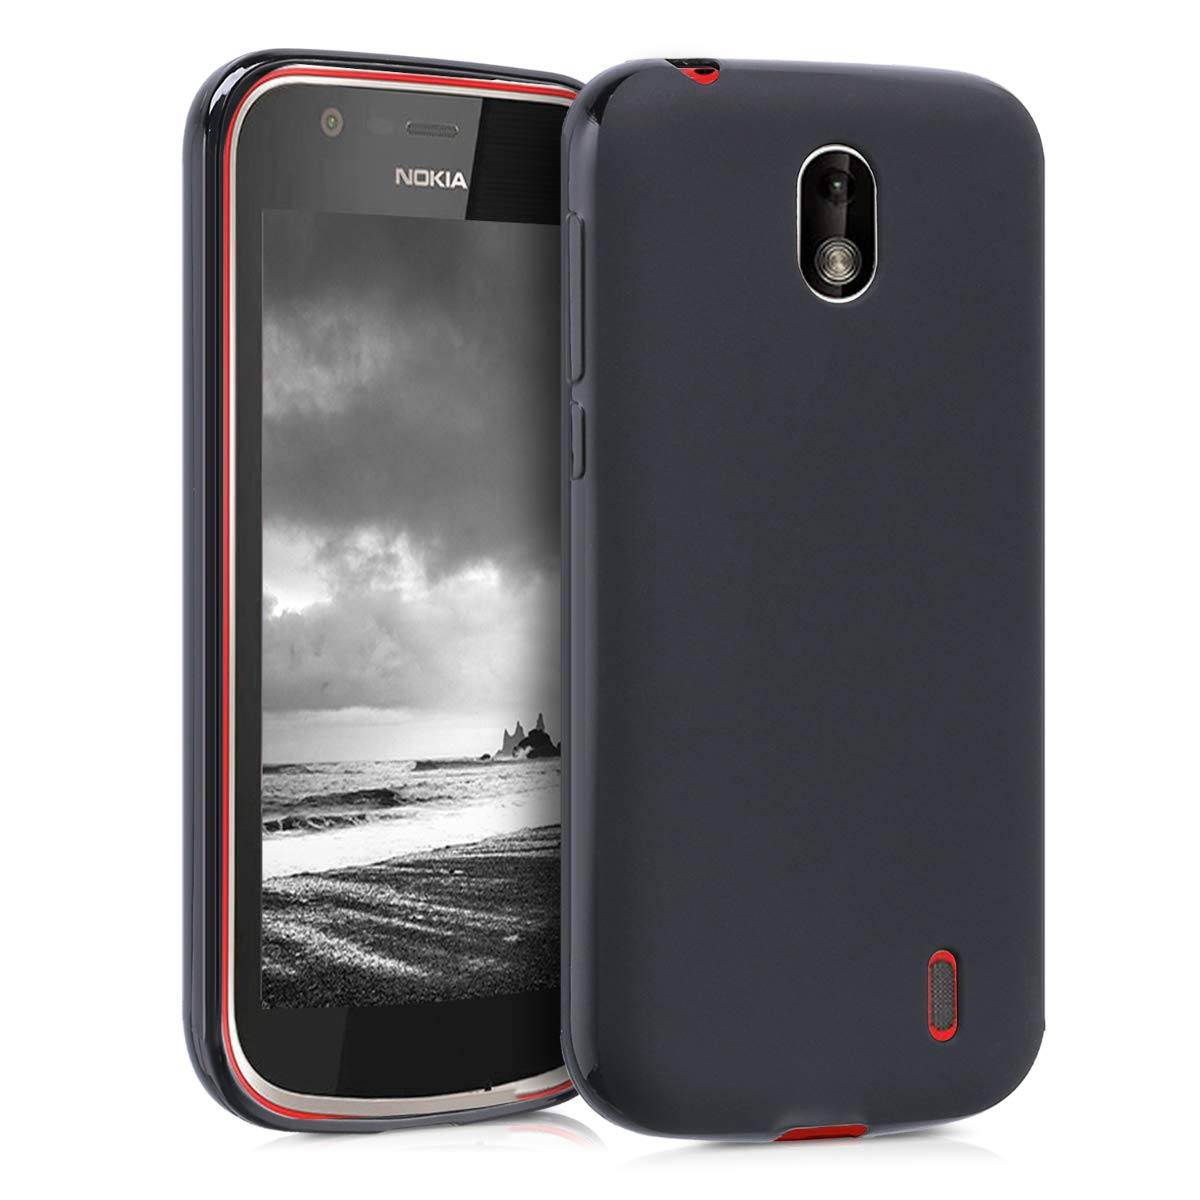 separation shoes 2eca2 5feda kwmobile TPU Silicone Case for Nokia 1 - Soft Flexible Shock ...